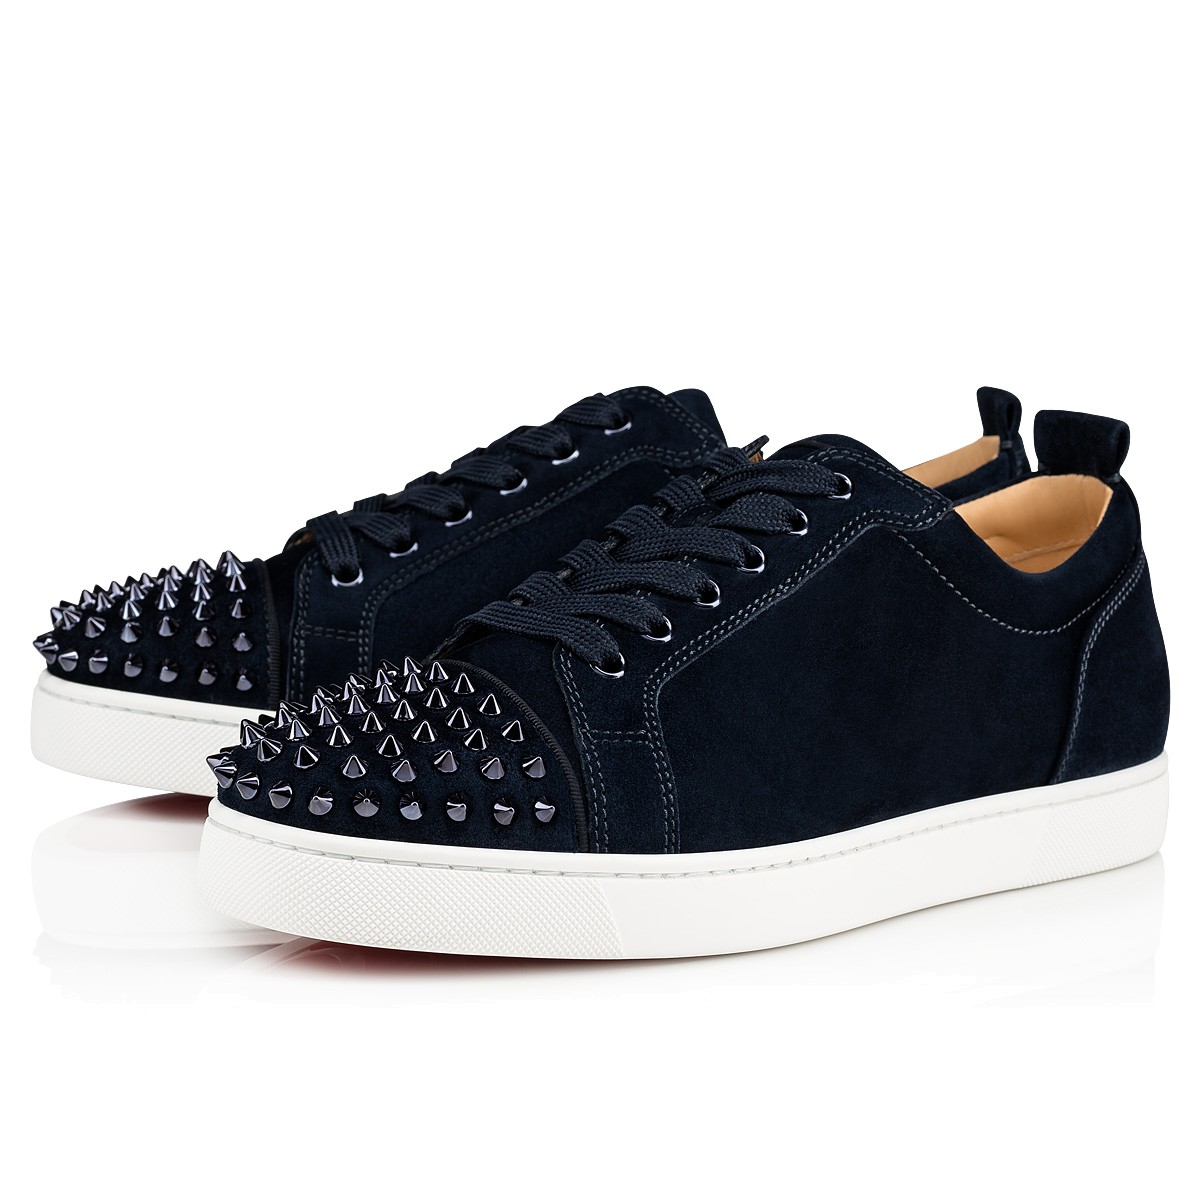 e5cbb1405ba Louis Junior Spikes Men's Flat - メンズシューズ -